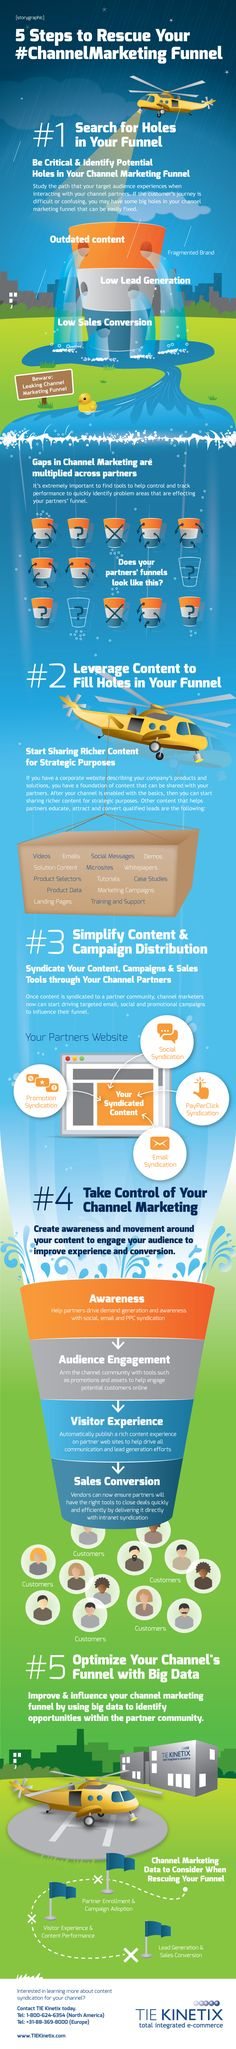 5 Steps to Rescue Your Channel Marketing Funnel [Infographic] image 5 steps to rescue your channel marketing funnel by TIE Kinetix Marketing Communications, Inbound Marketing, Marketing And Advertising, Business Marketing, Content Marketing, Internet Marketing, Social Media Marketing, Digital Marketing, Online Marketing Strategies